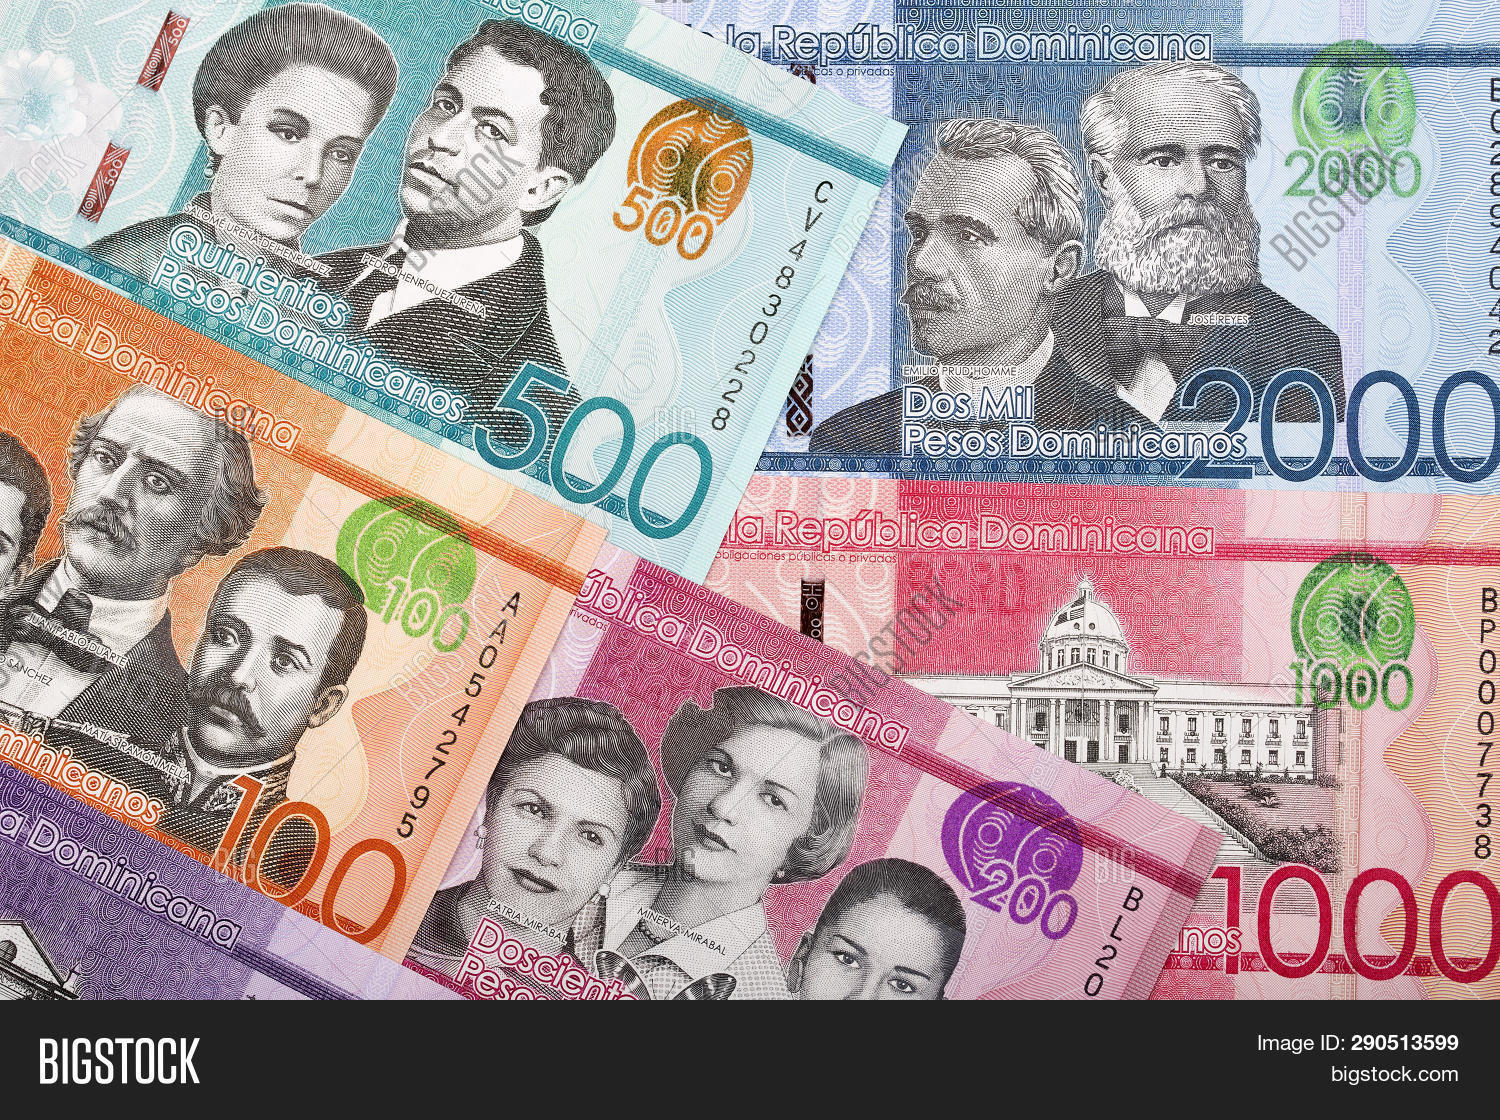 Money Dominican Image Photo Free Trial Stock